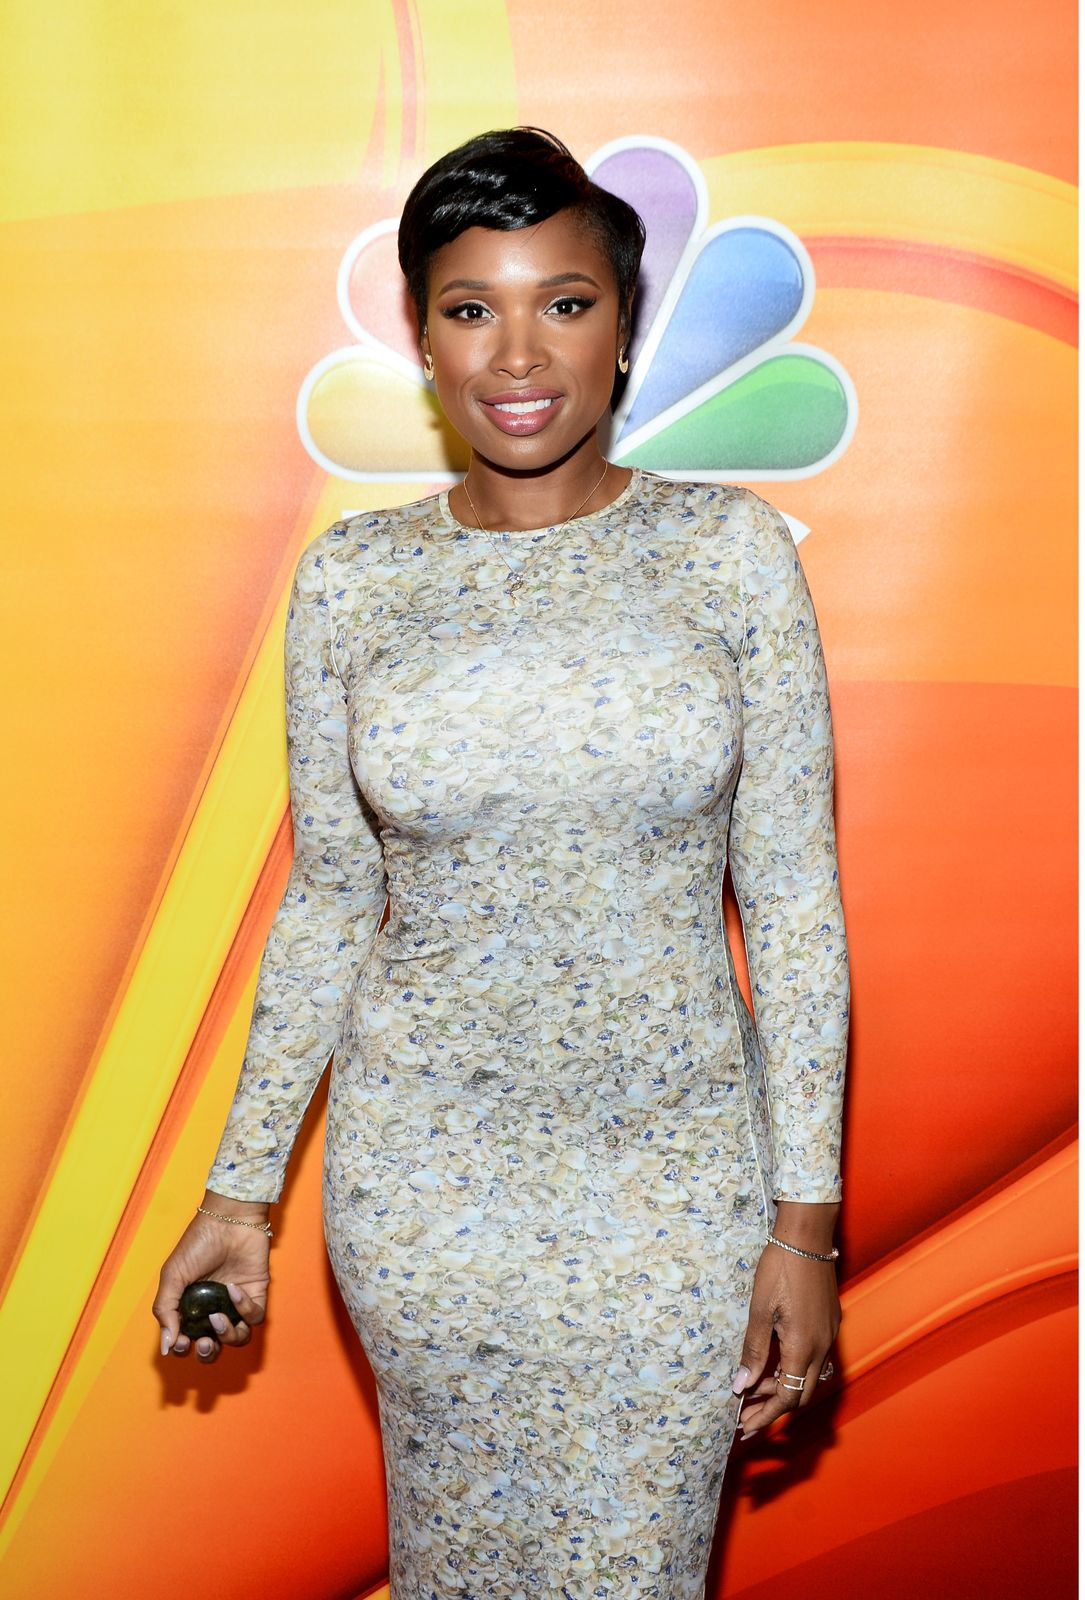 Jennifer Hudson during the 2016 Summer TCA Tour at The Beverly Hilton Hotel on August 2, 2016 | Photo: Getty Images